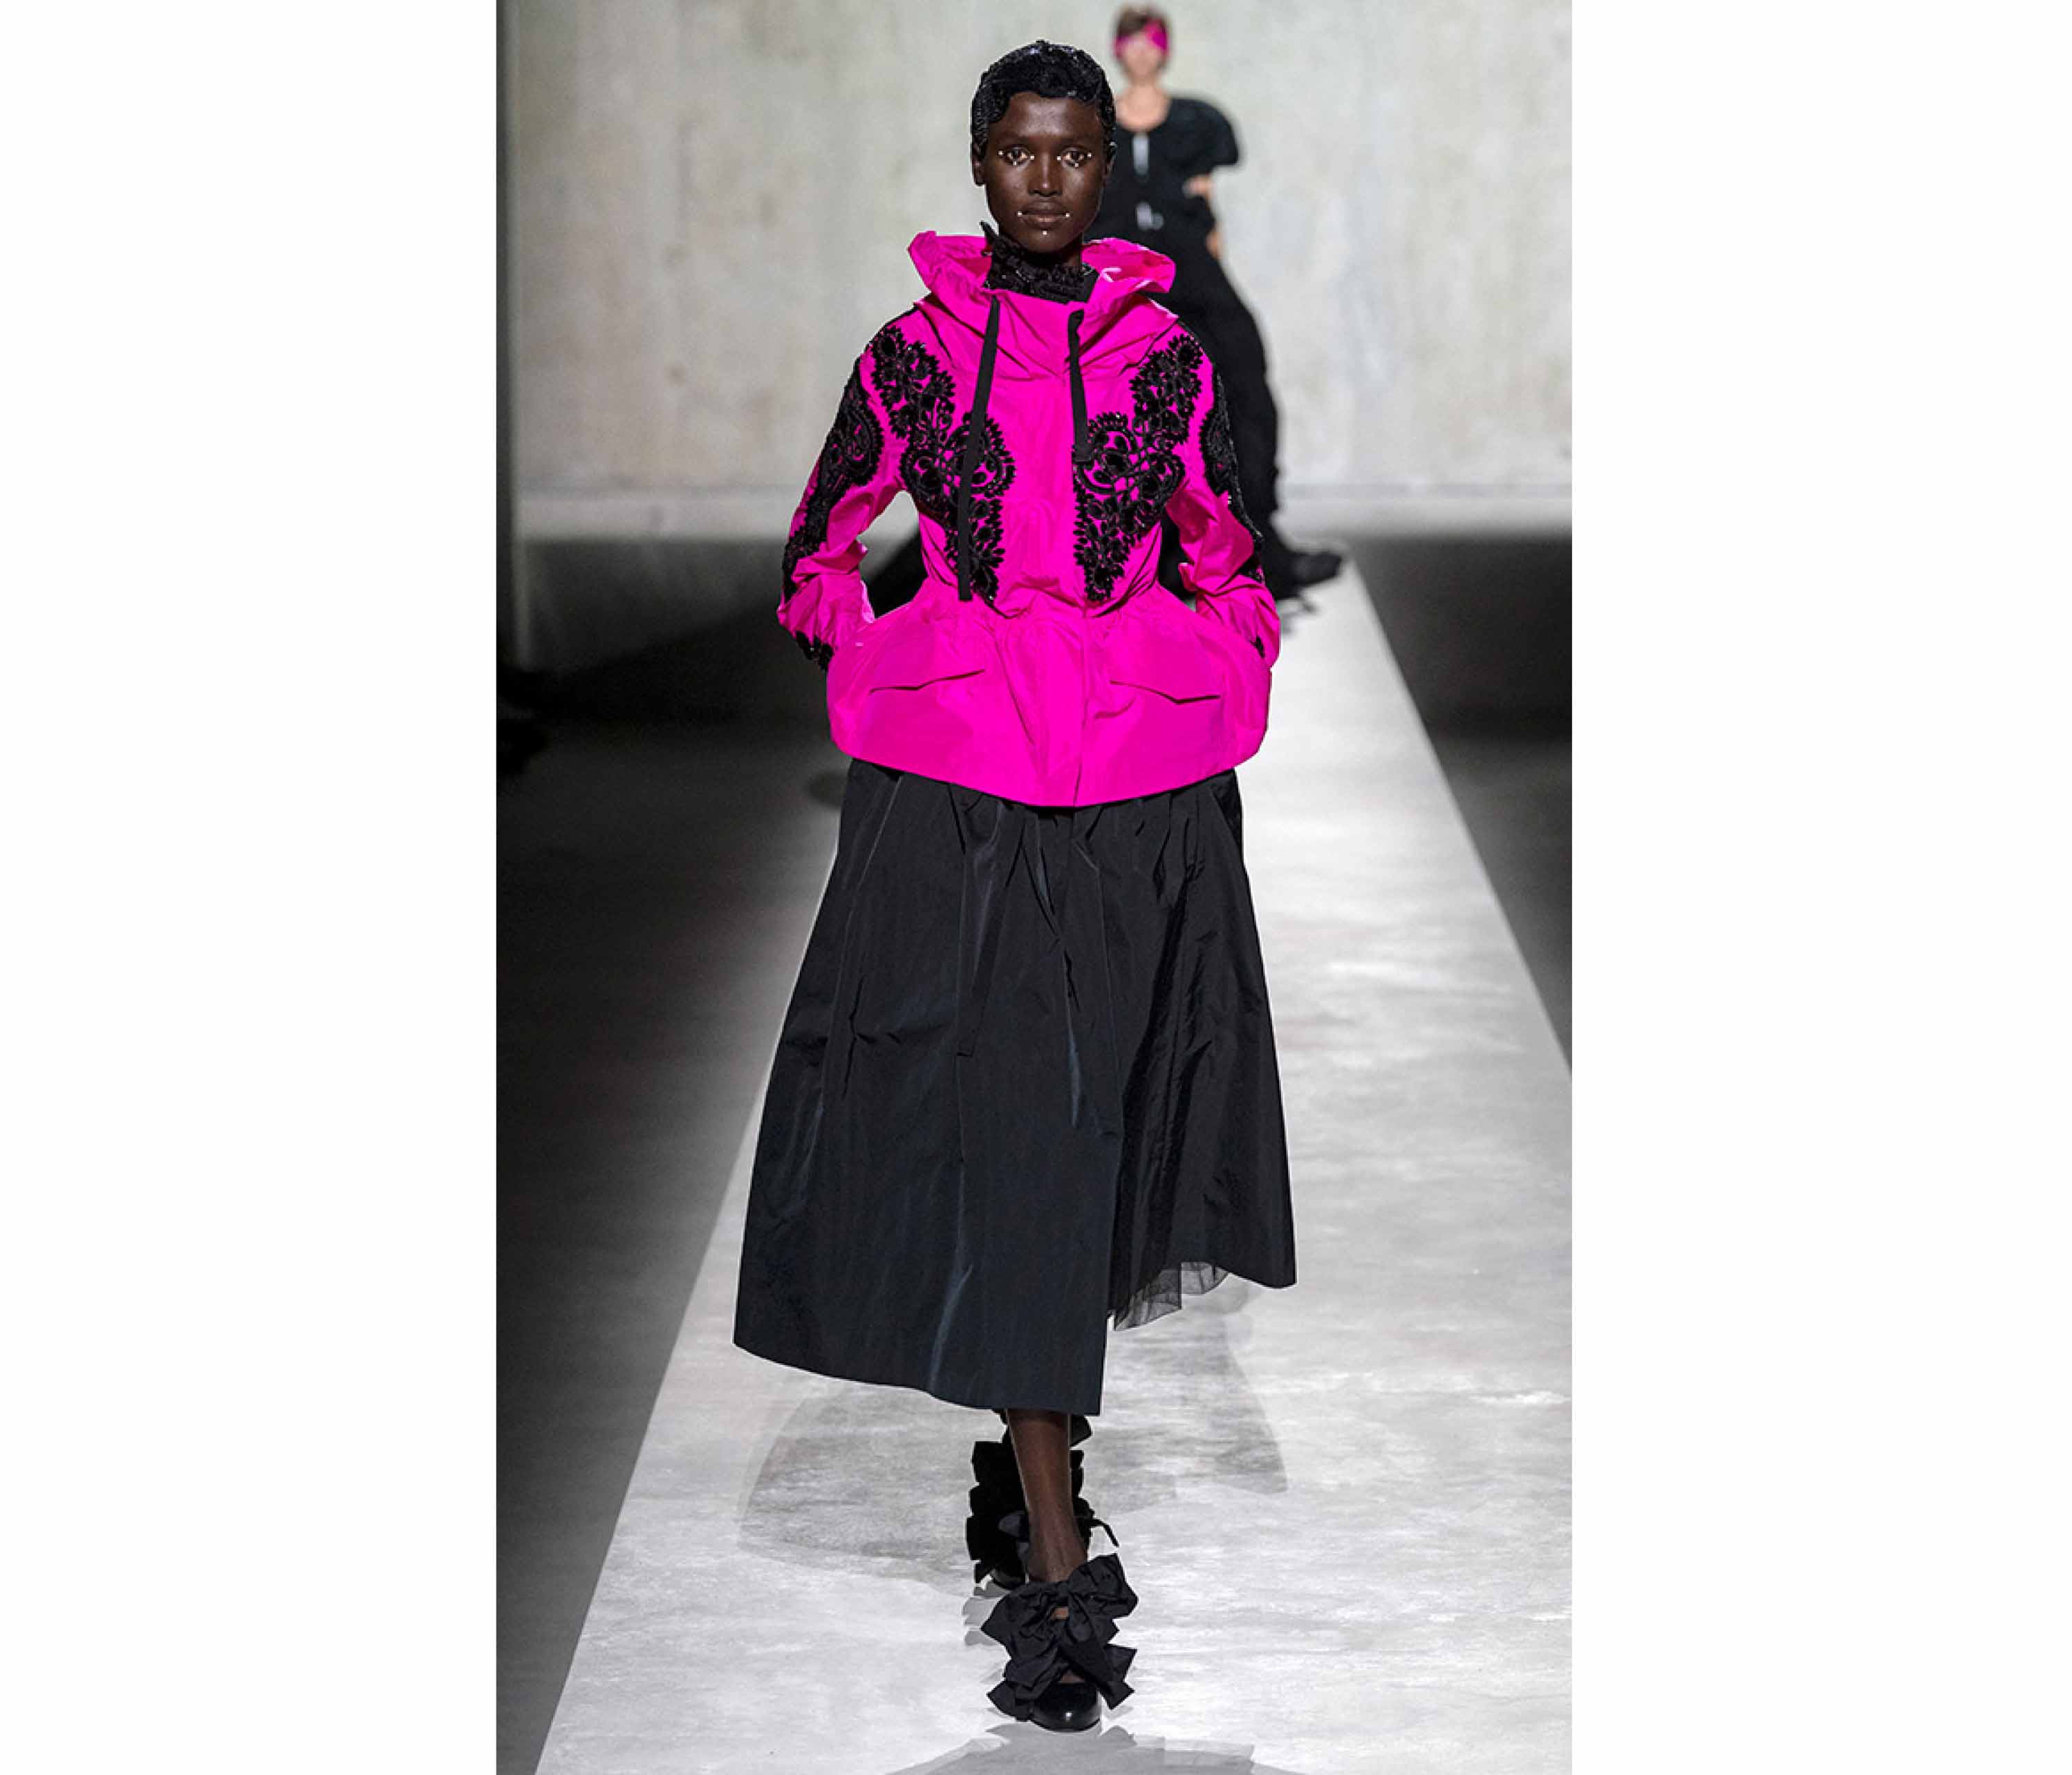 https://camarguefashion.com.au/collections/dries-van-noten